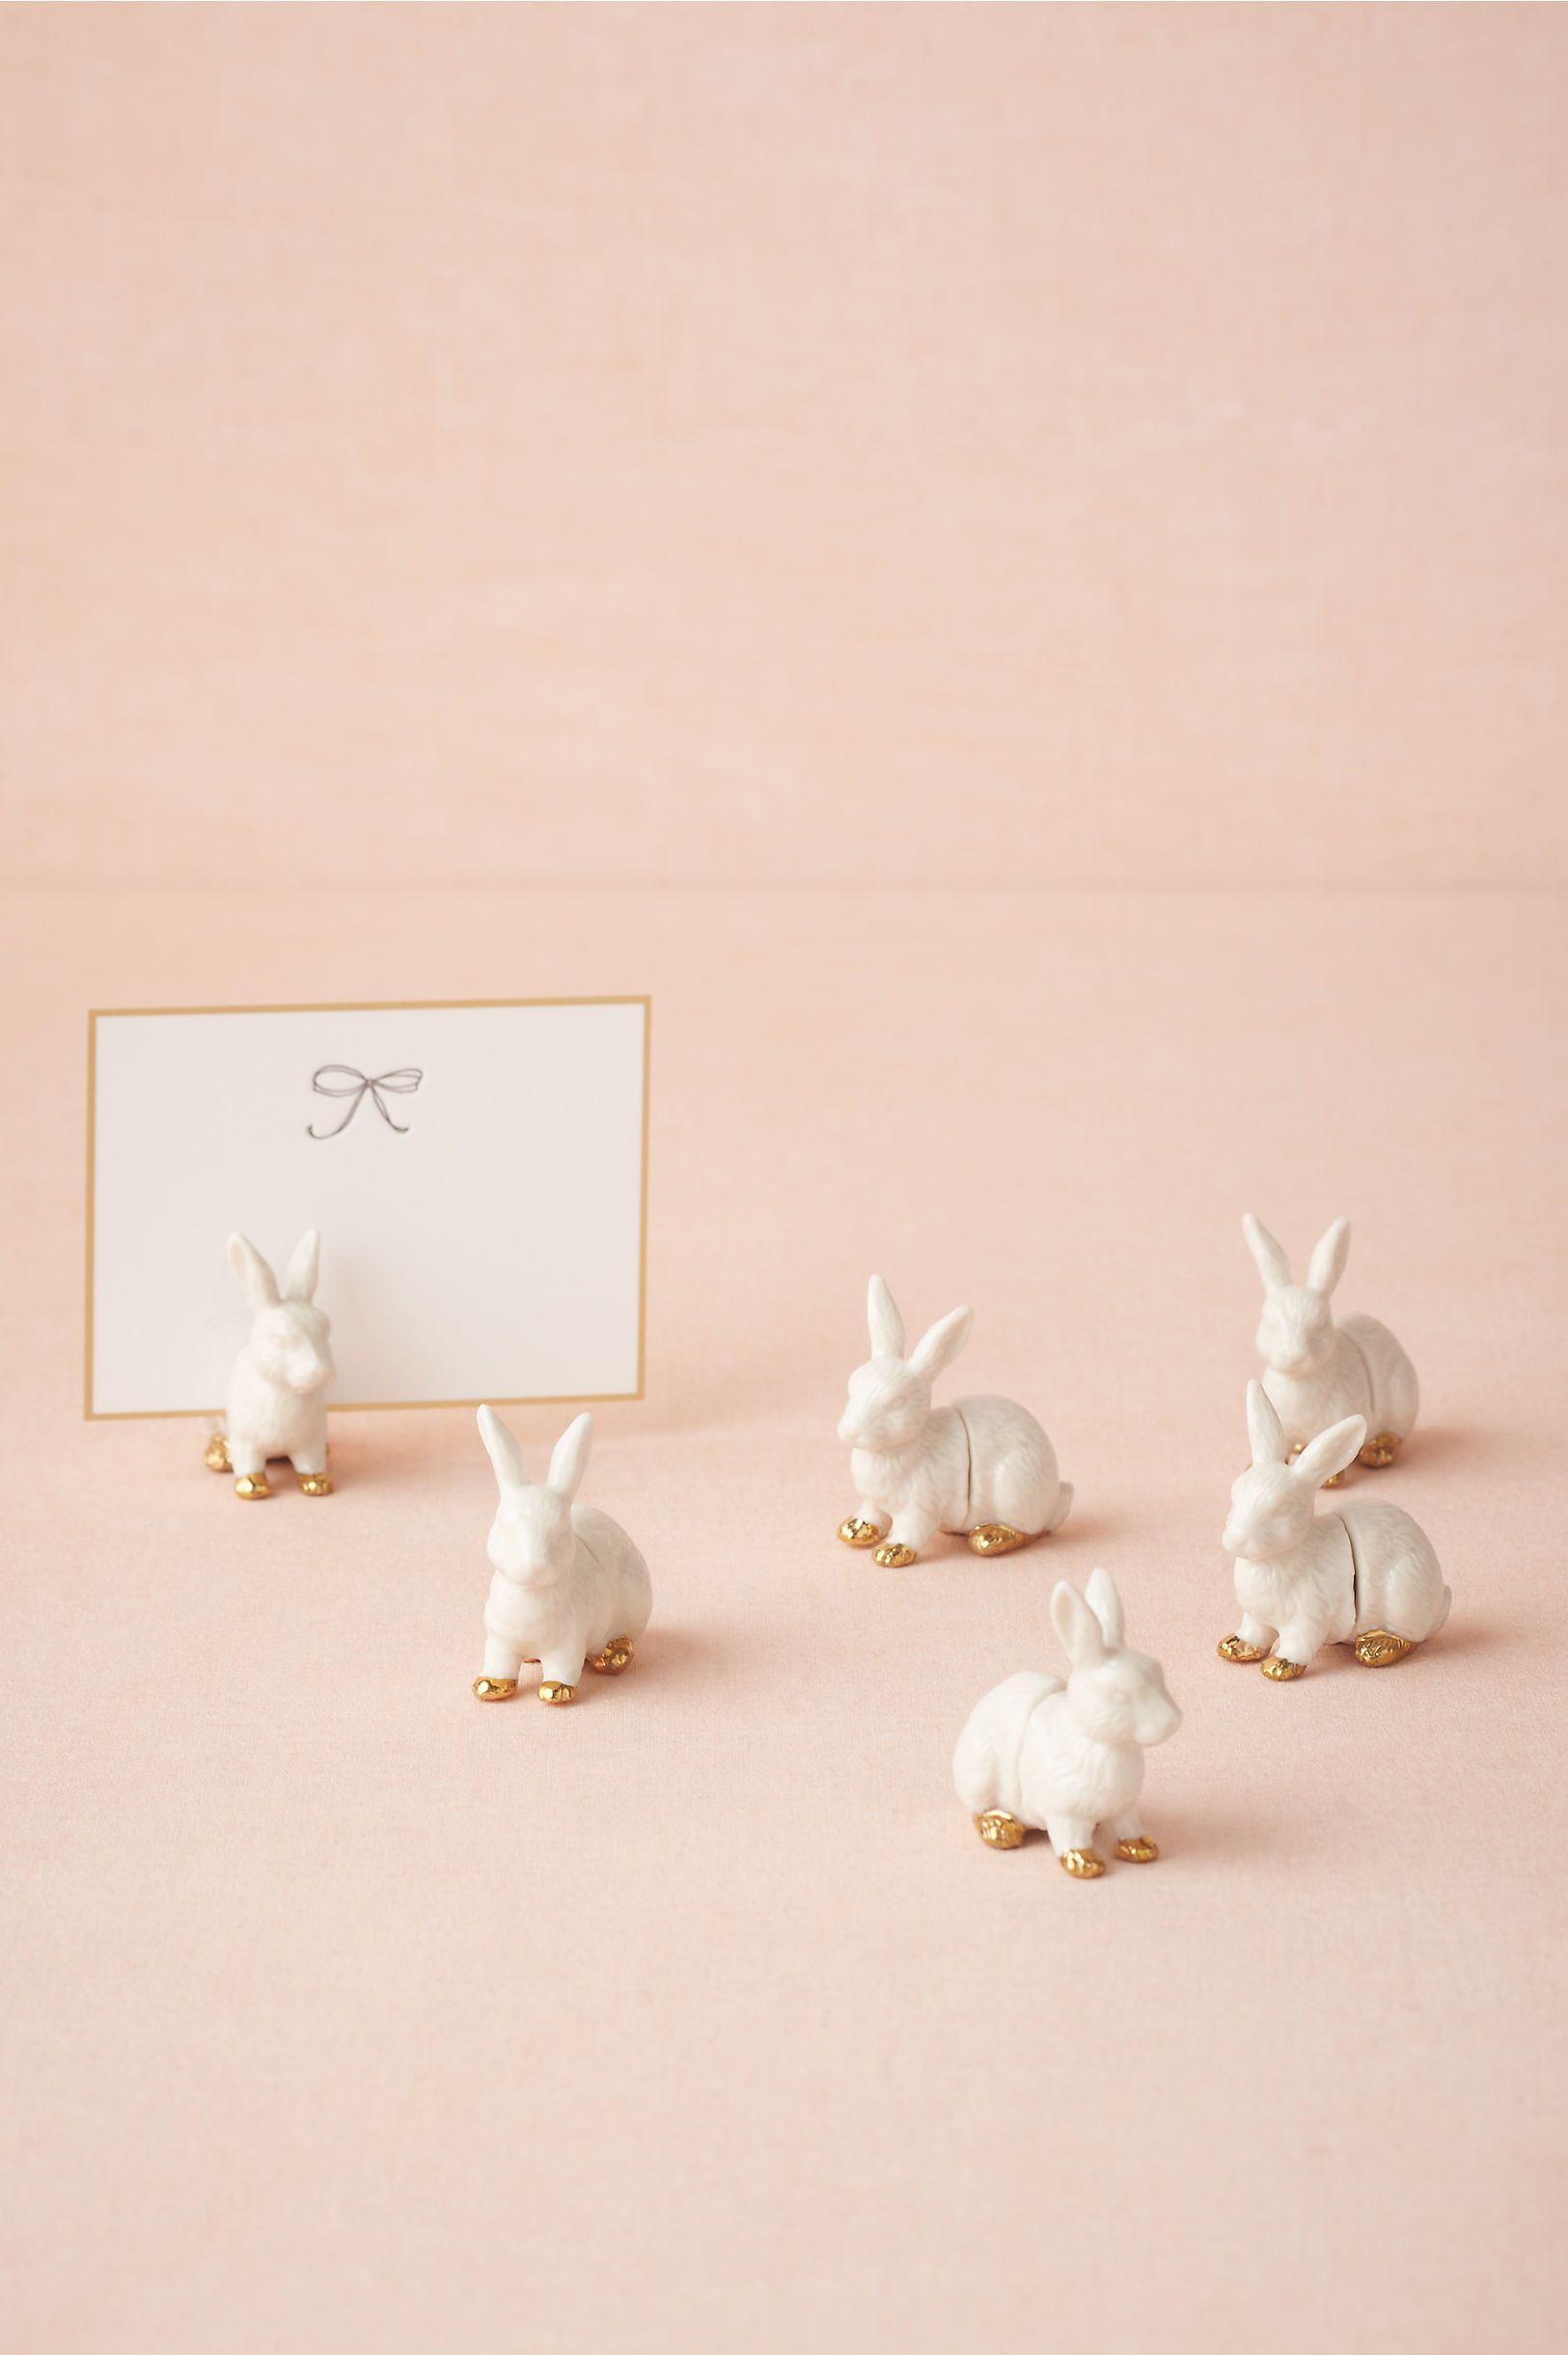 "Bunny Place Card Holders (6)  $28.00  Sweet cottontails dressed up with gilded paws guide guests to their assigned seats. A magnet closure allows you to pull them apart to slide place cards in. Available exclusively from BHLDN.        Set of 6      1.75""H, 1.5""W      Stoneware, magnet      Spot clean      Imported"